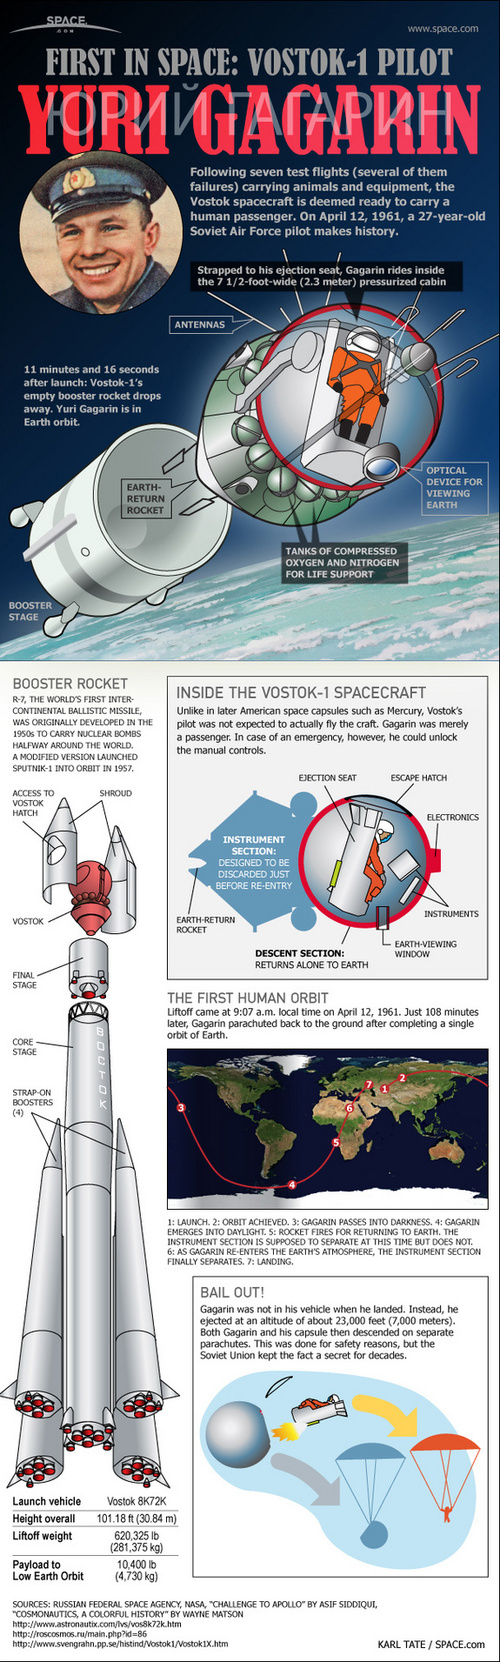 Yuri-gagarin-first-human-spaceflight-infographic